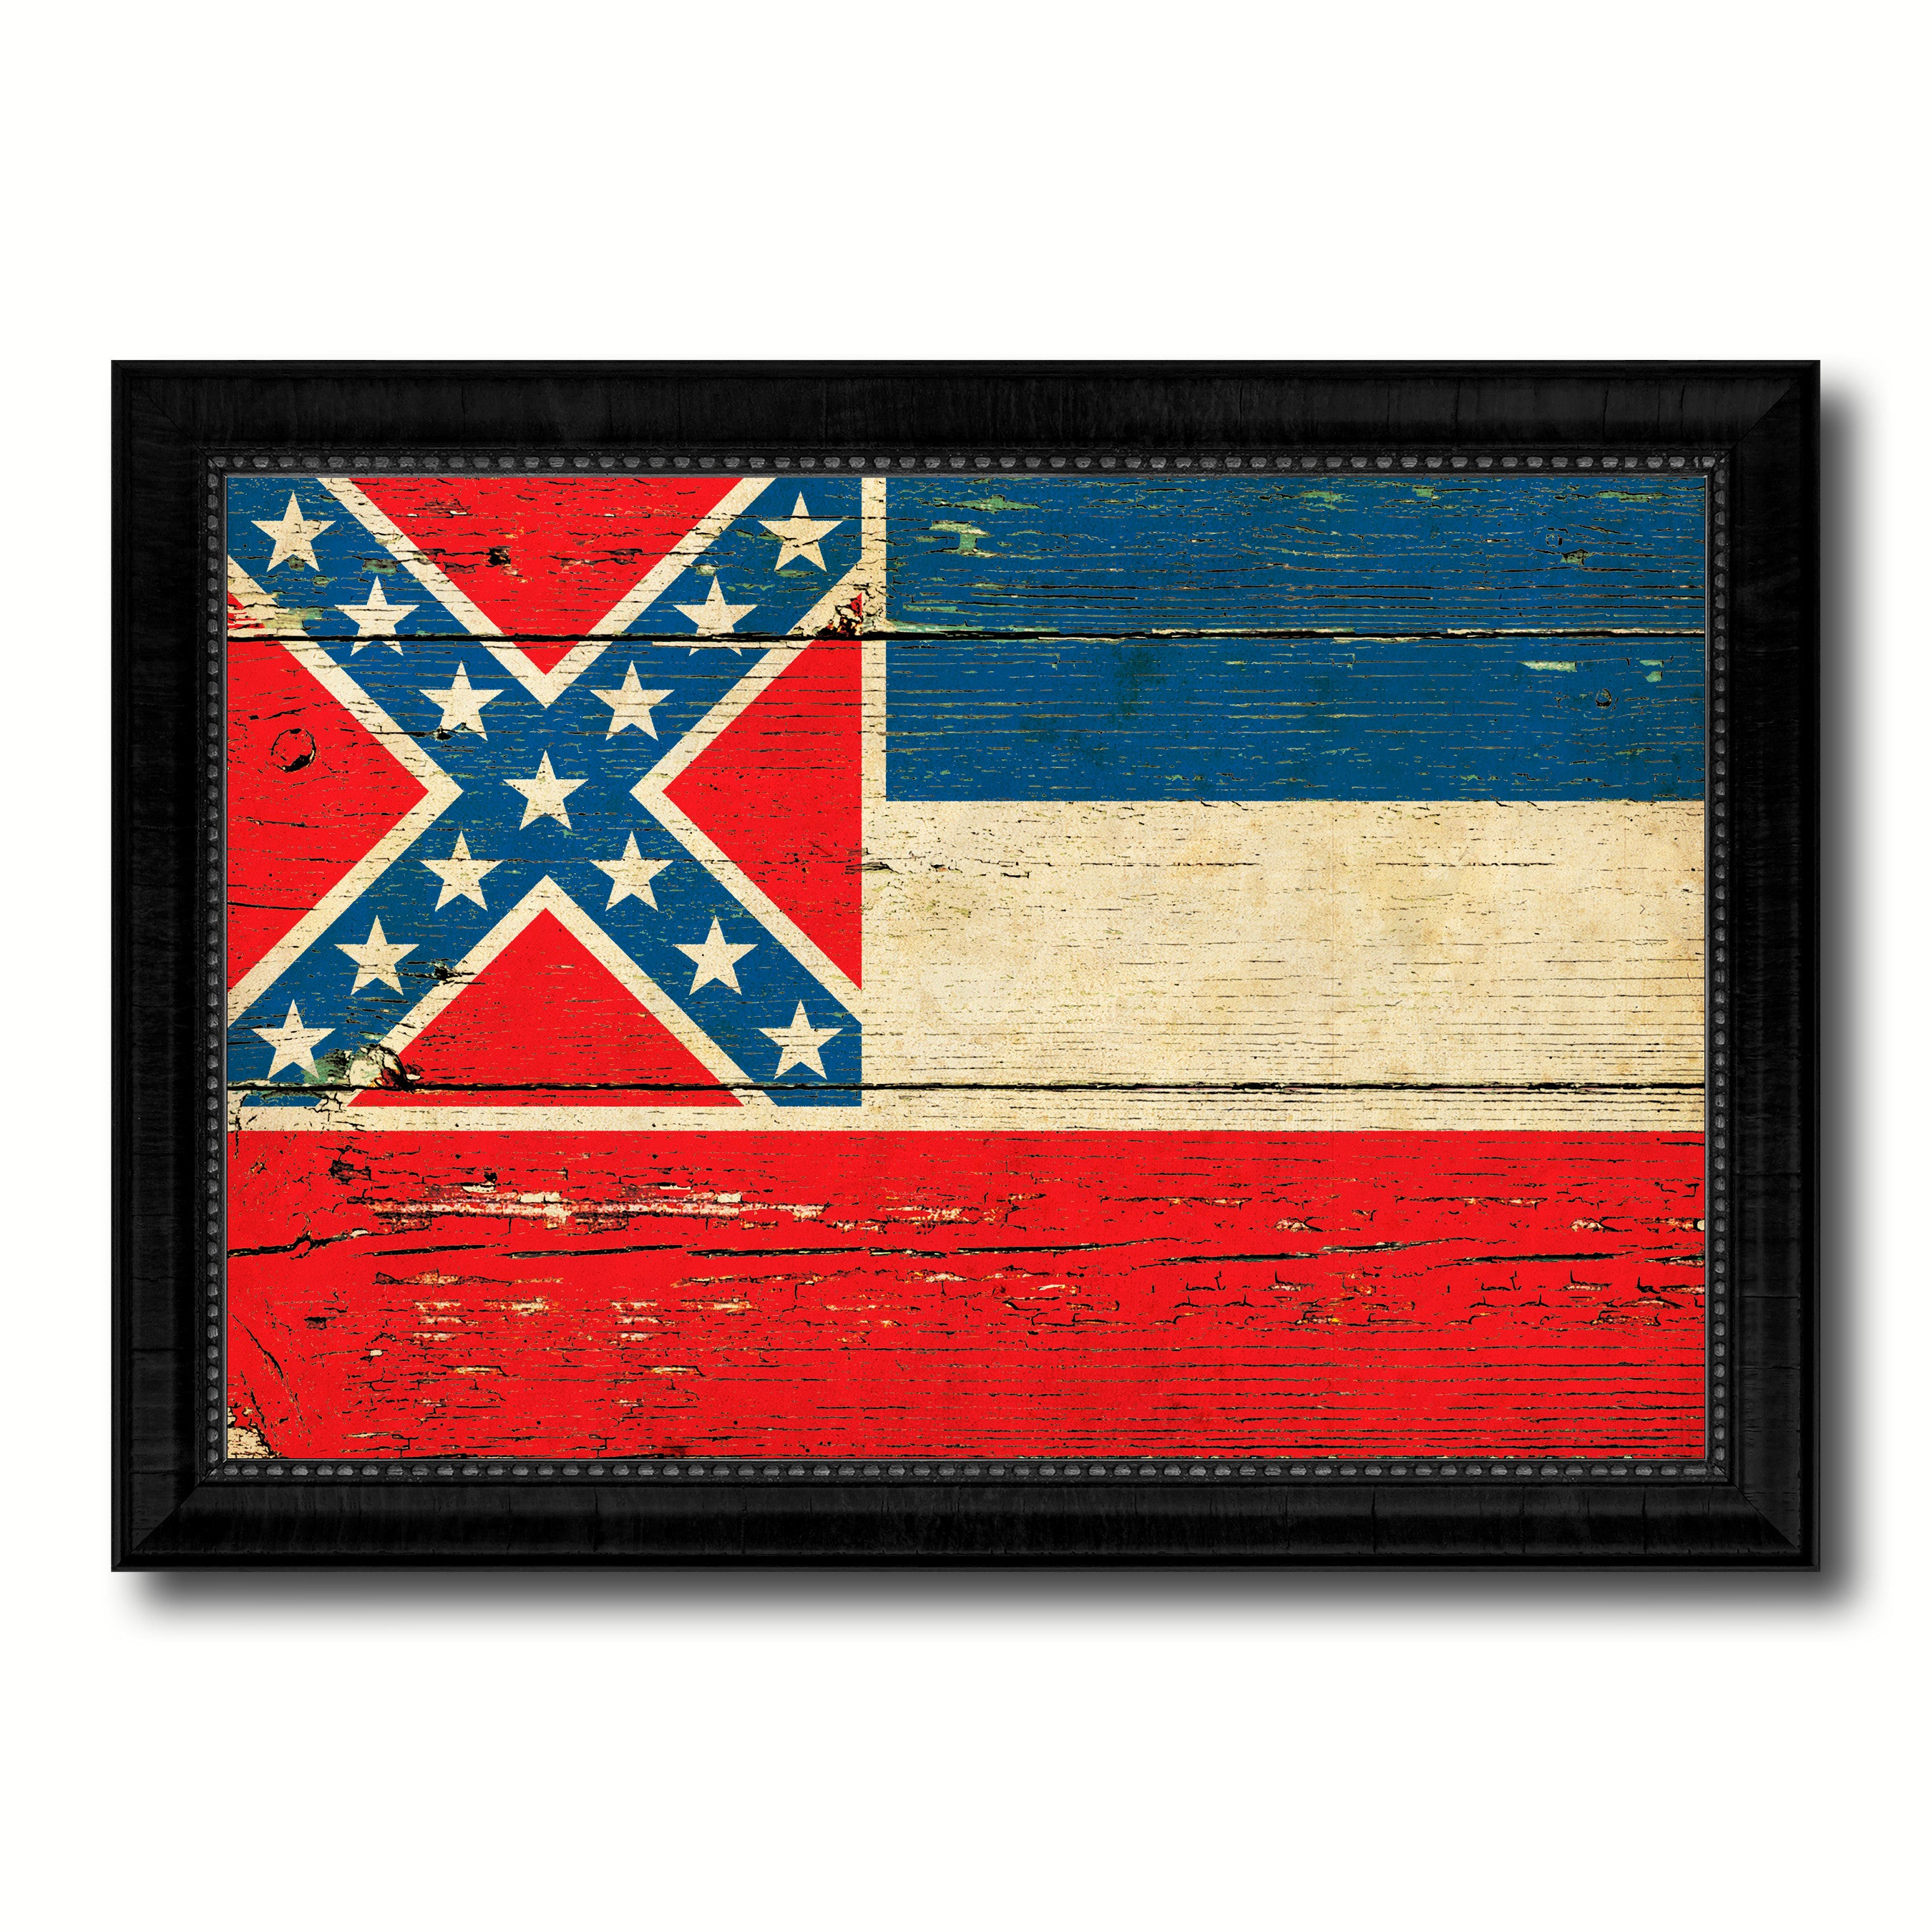 Mississippi State Vintage Flag Canvas Print With Black Picture Frame Home Decor Man Cave Wall Art Collectible Decoration Artwork Gifts